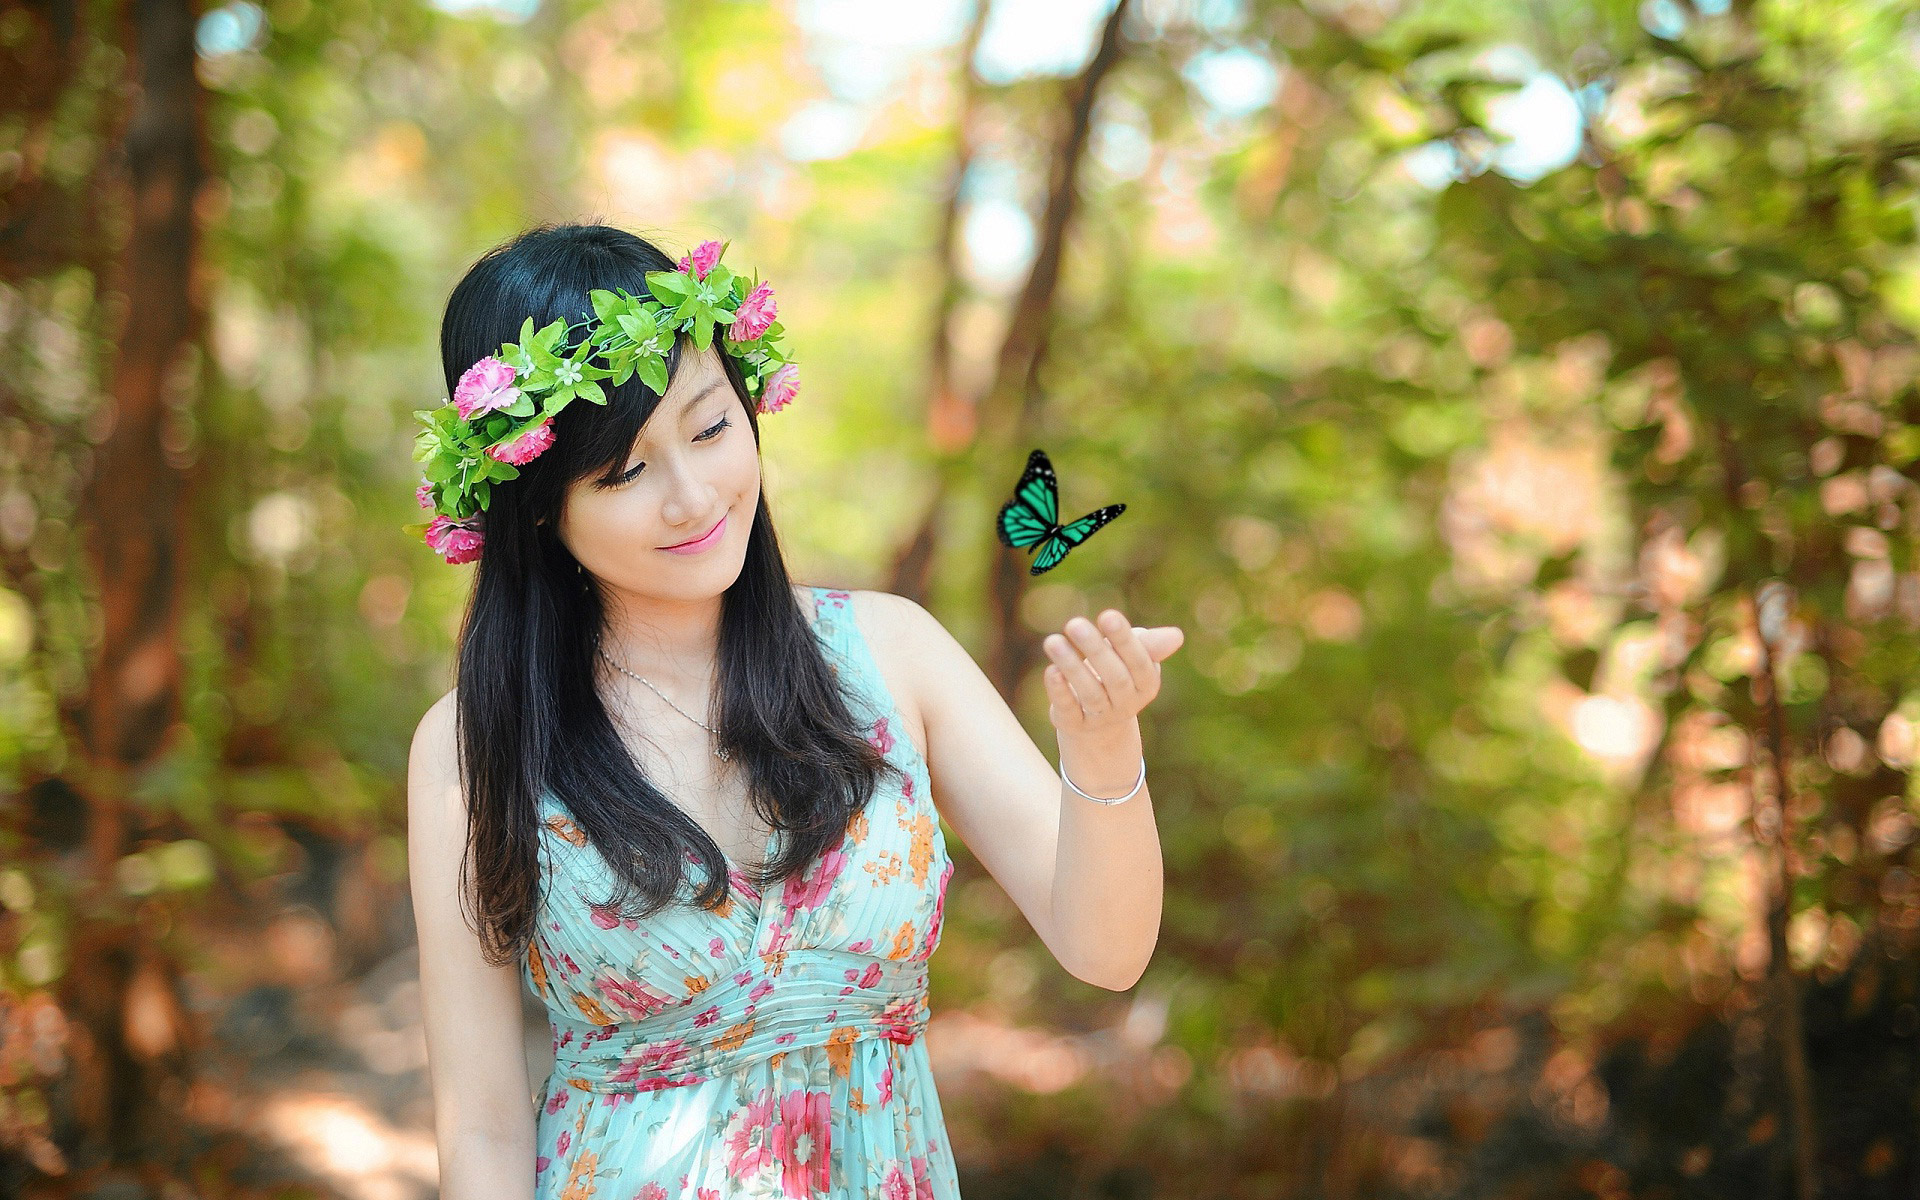 Decent Wallpapers For Girls Friendship Day Wallpapers Free Friendship Day Wallpaper